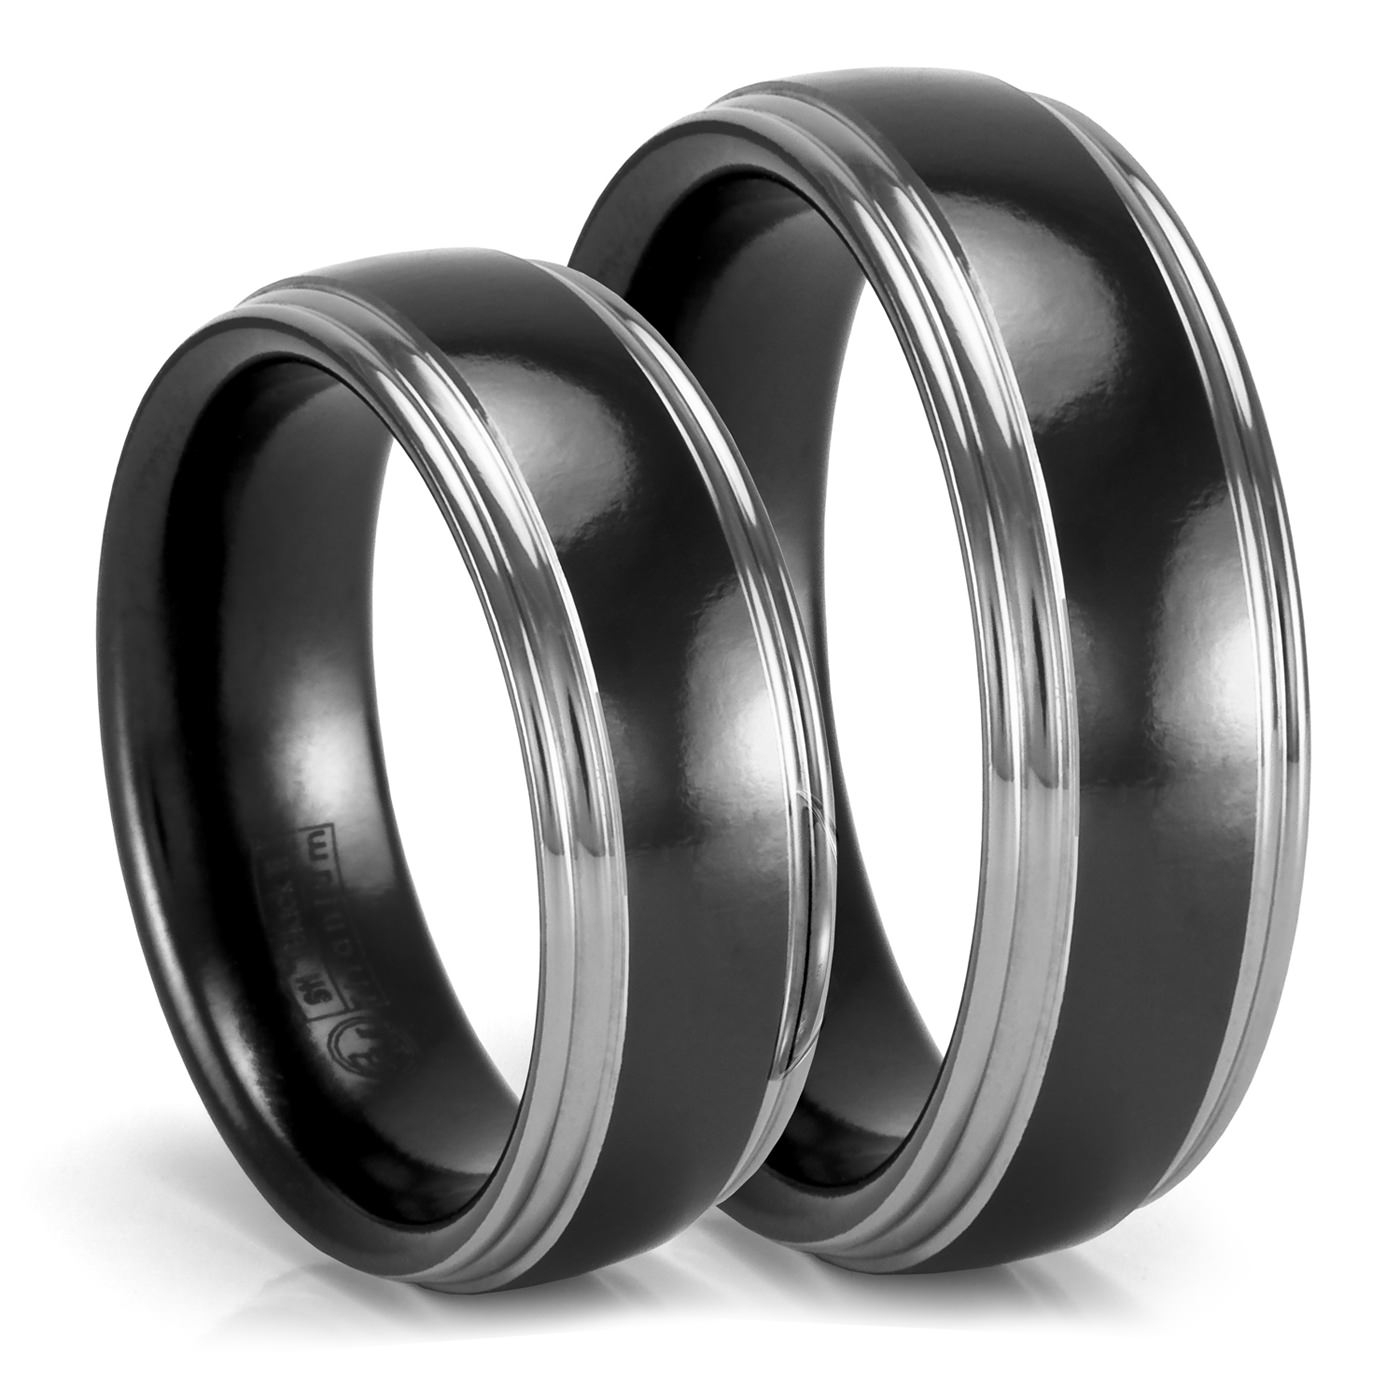 Matching Grey & Black Zirconium Wedding Bands – Wedding Set Pertaining To Black Zirconium Wedding Bands (View 10 of 15)